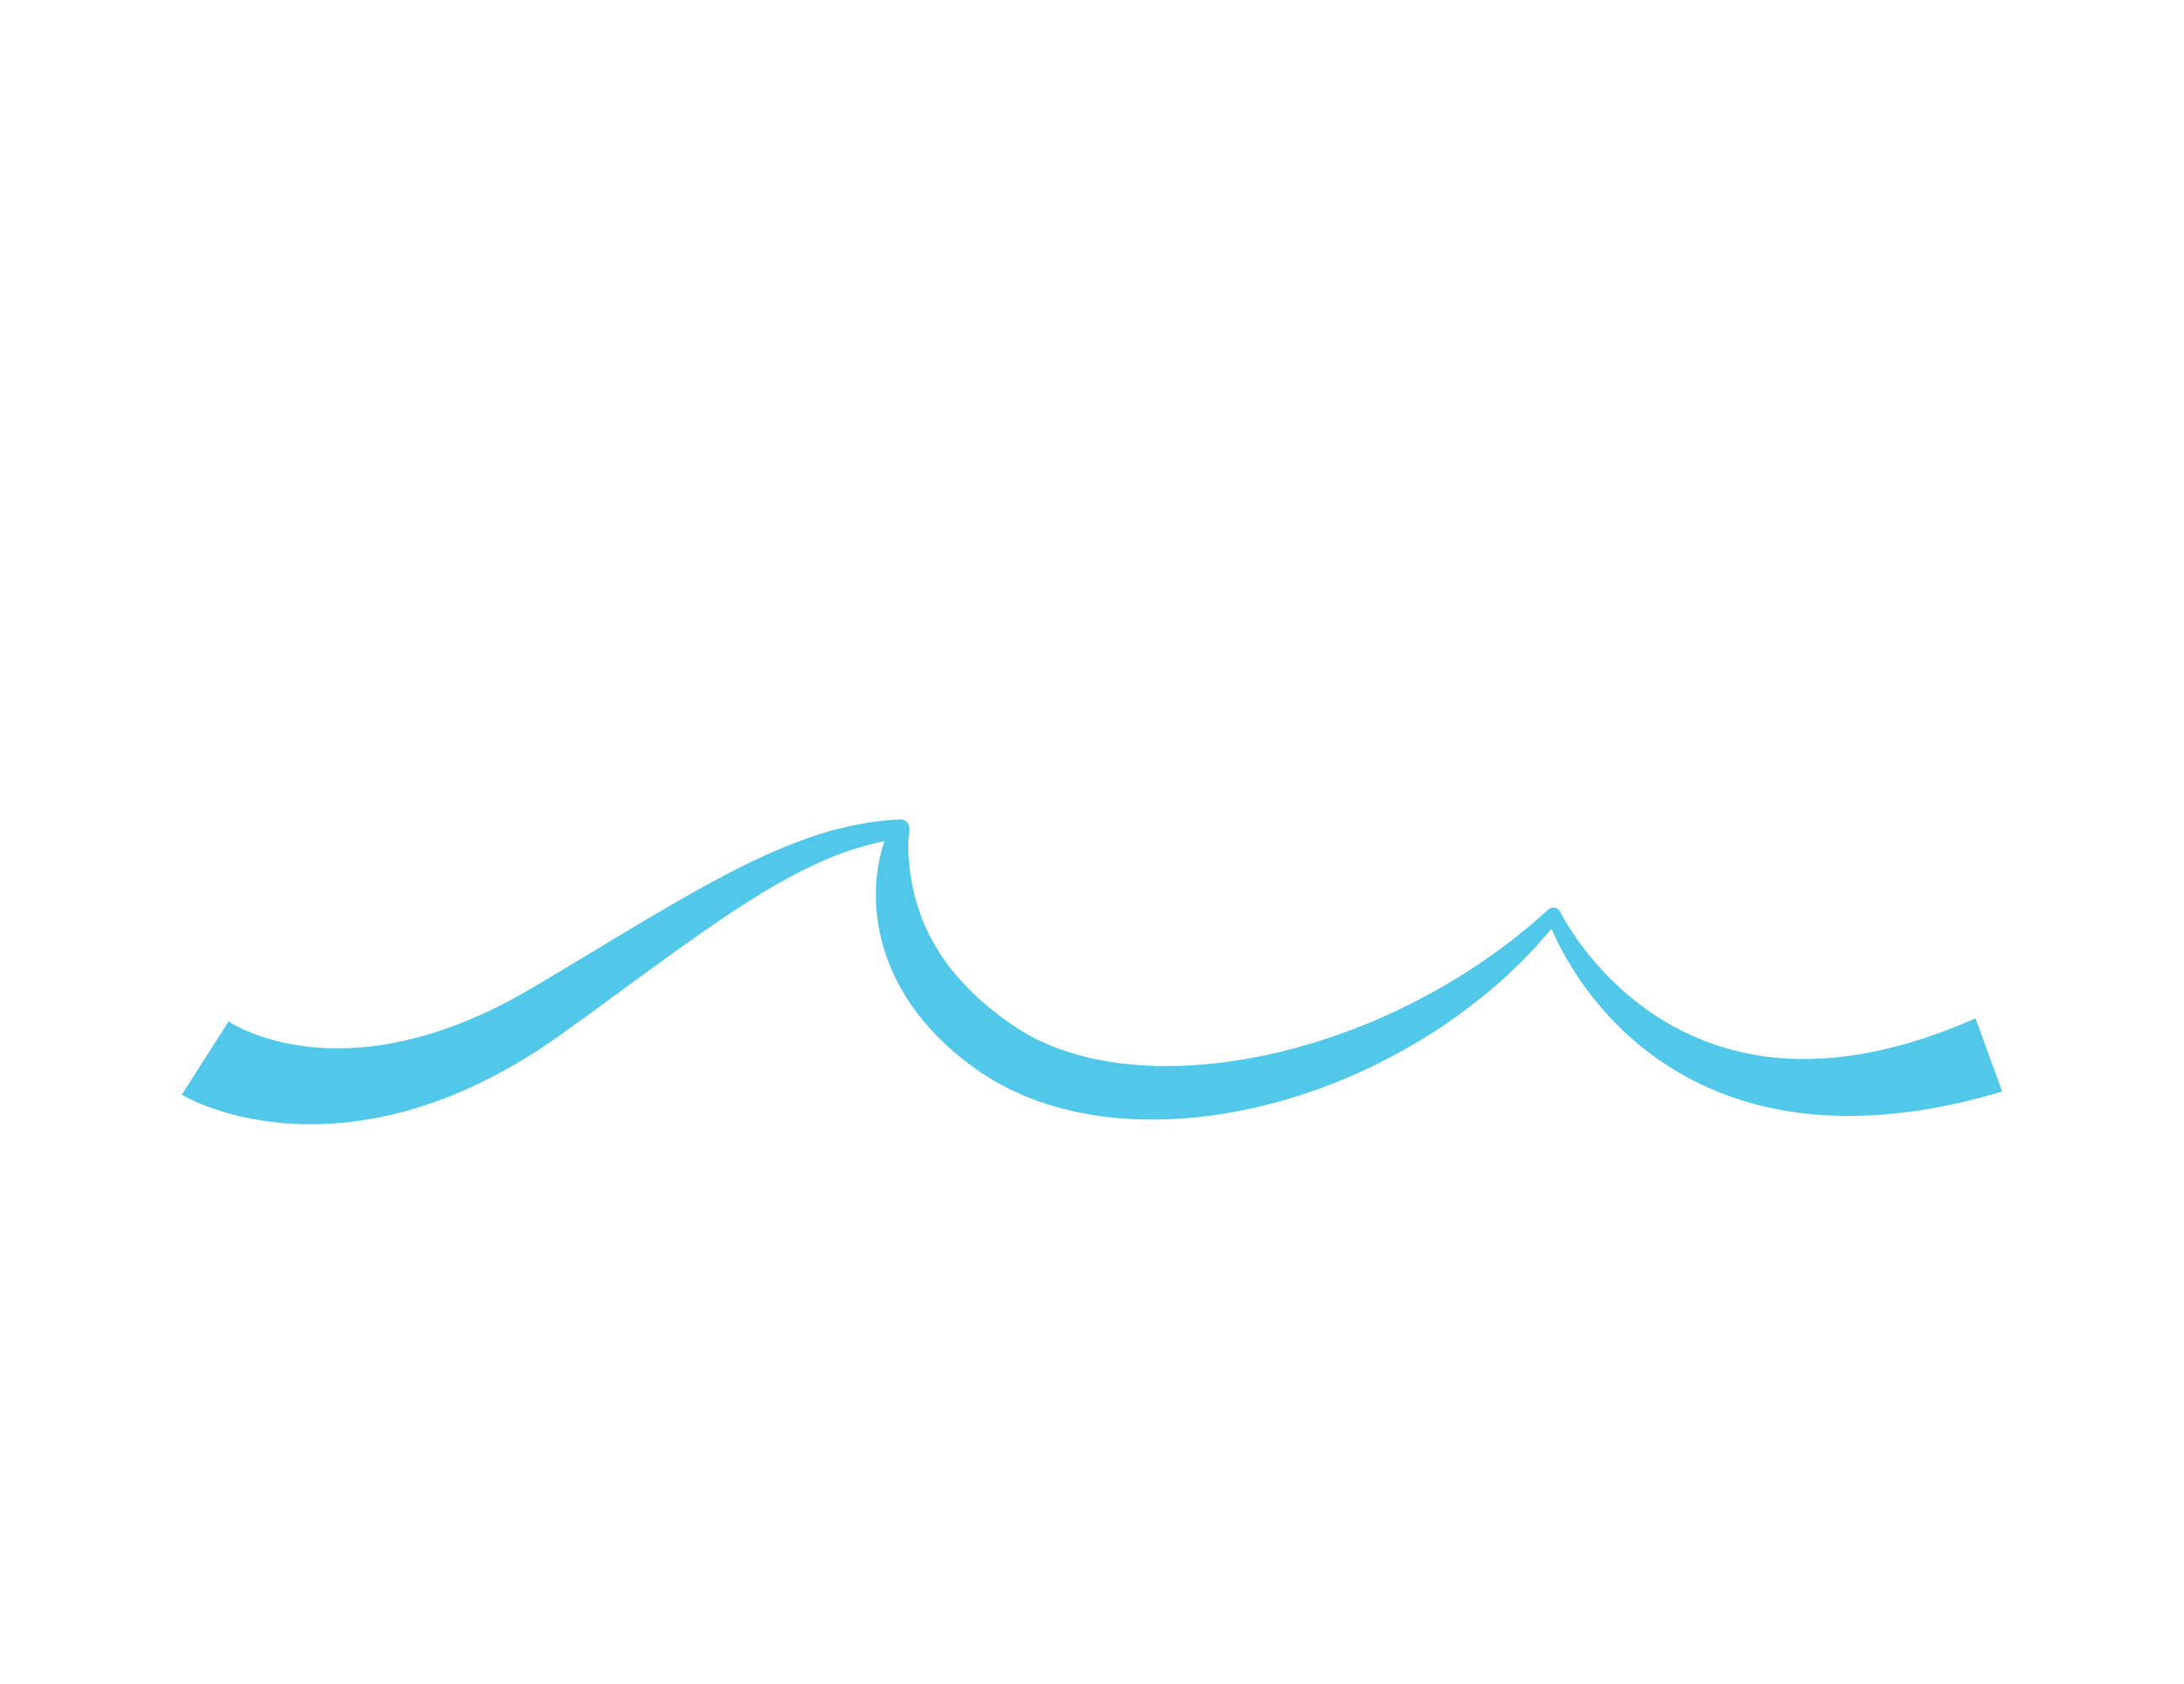 https://i2.wp.com/spencerwetmore.com/wp-content/uploads/2020/02/SpencerWetmoreForSCHouse.png?fit=2592%2C1998&ssl=1